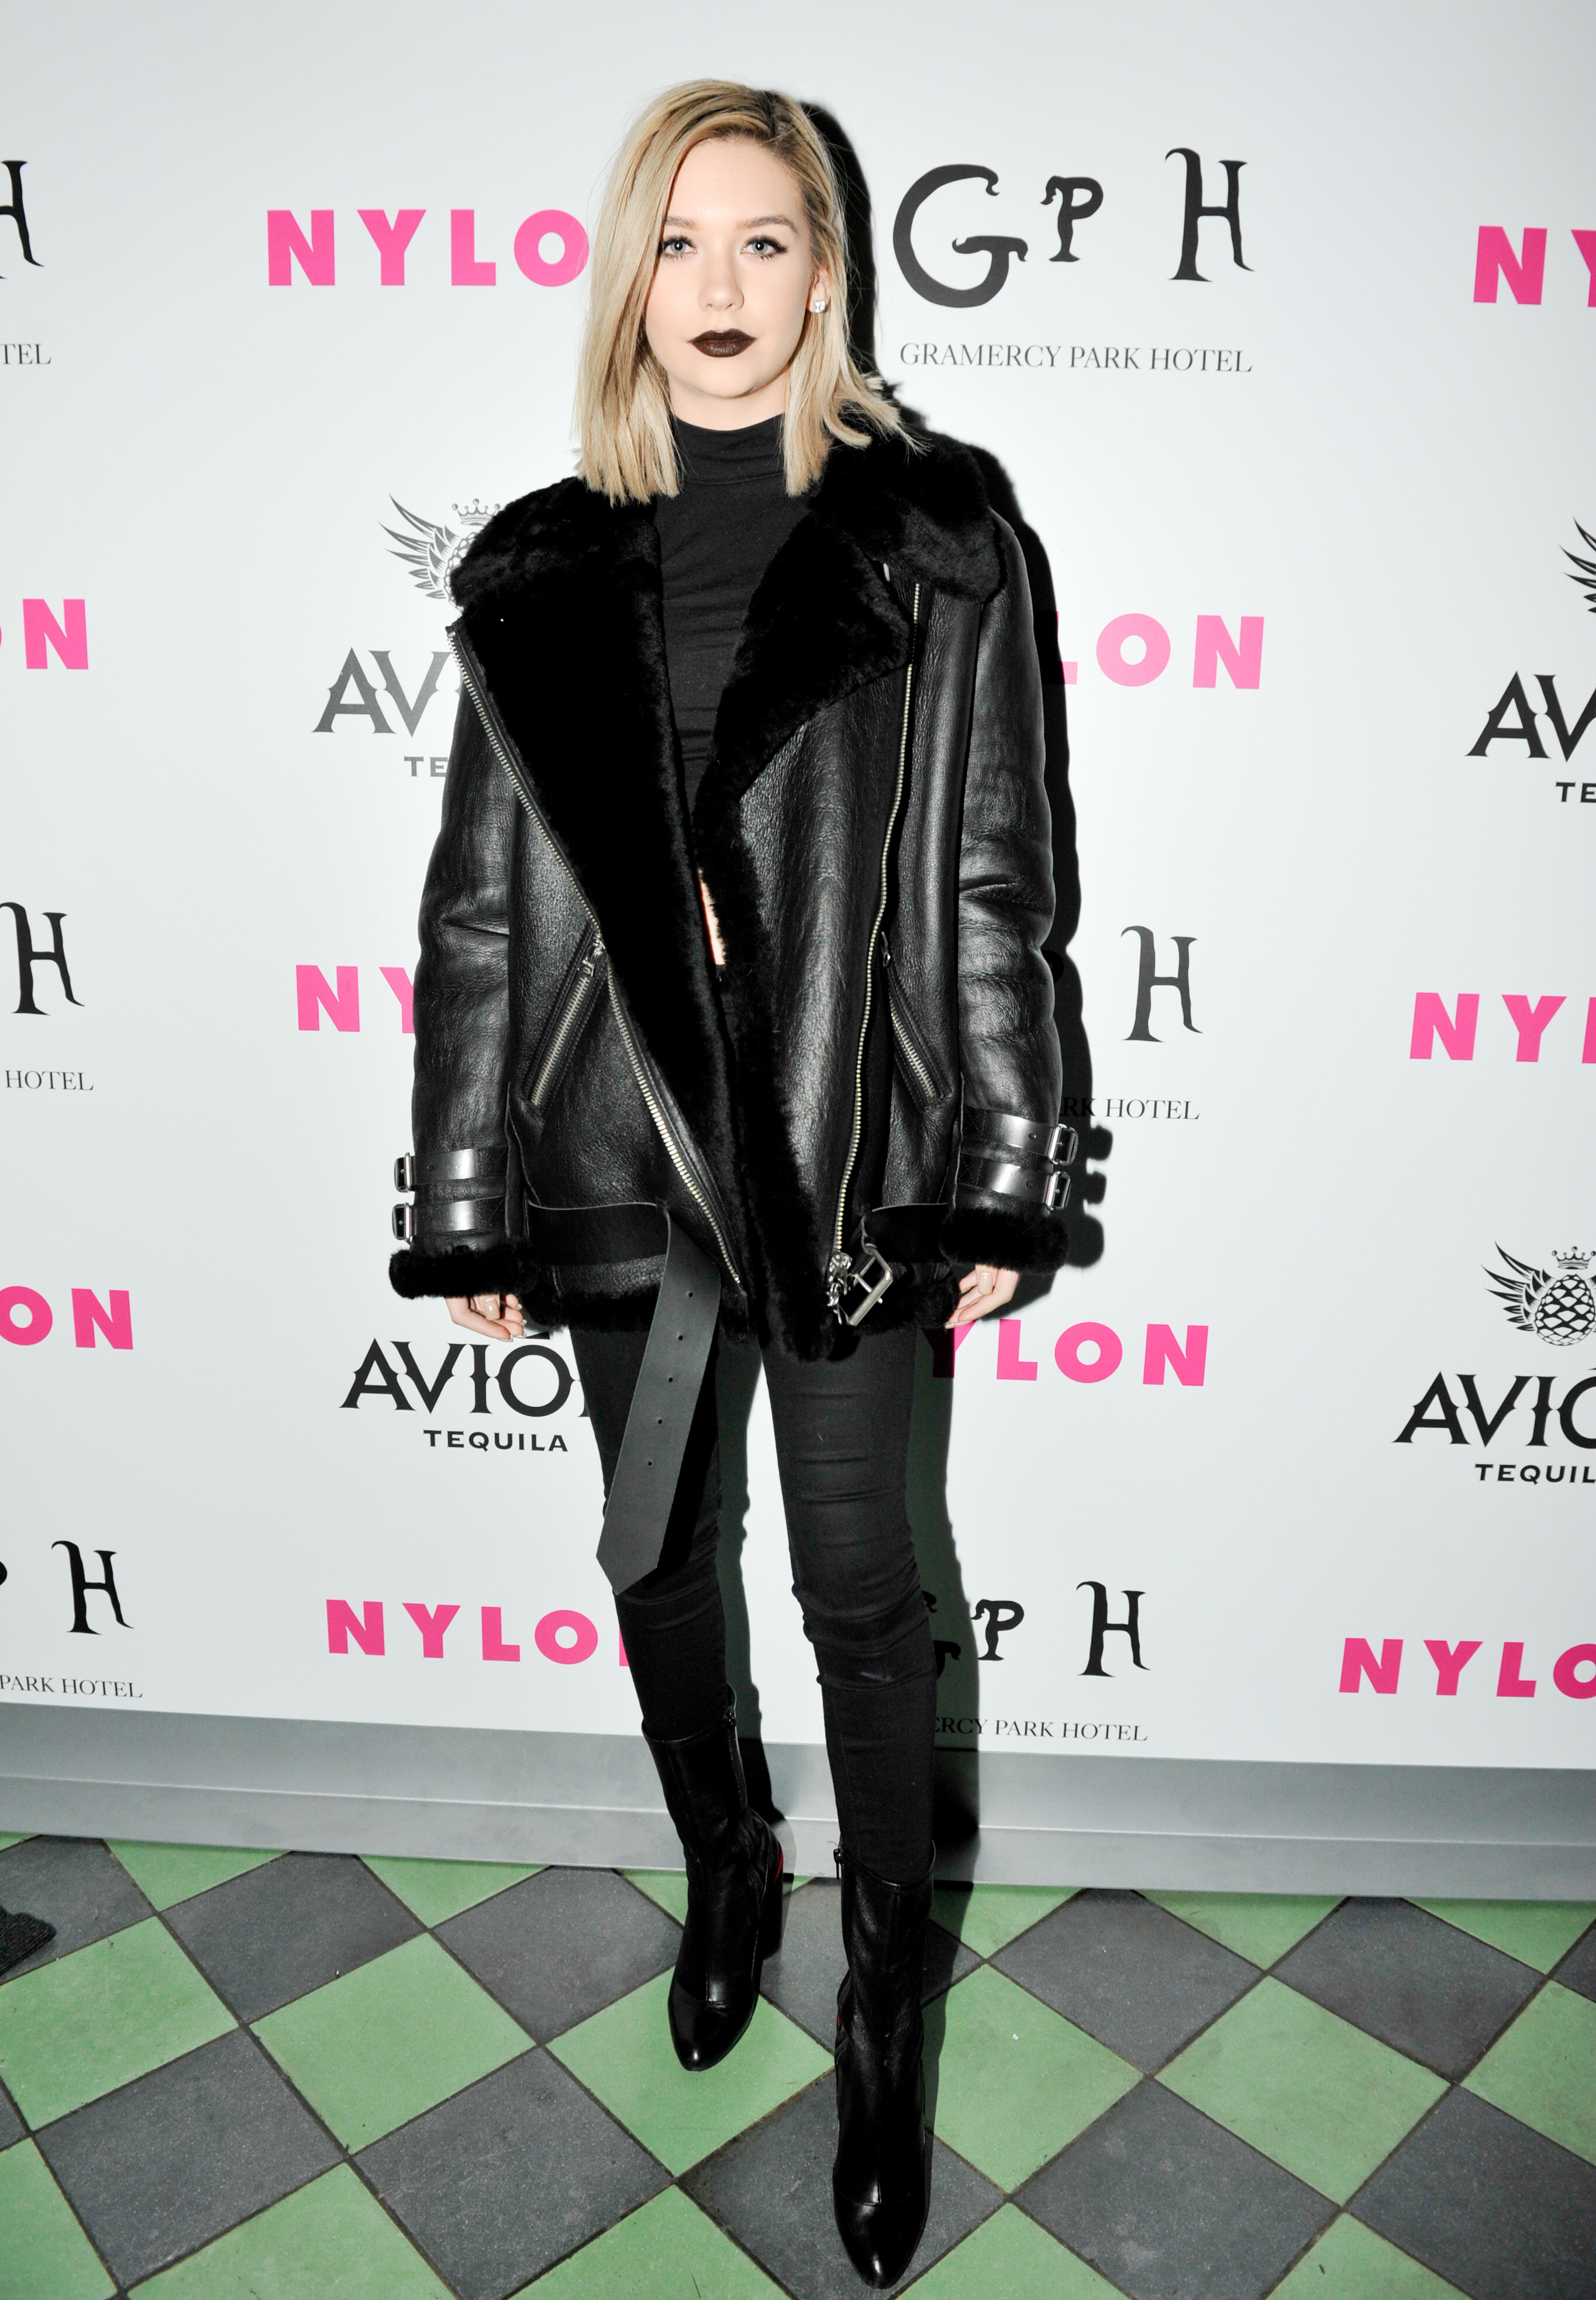 Amanda Steele attends Nylon Celebrates Fashion Week event at the Rose Bar in New York City on Feb. 11, 2016.